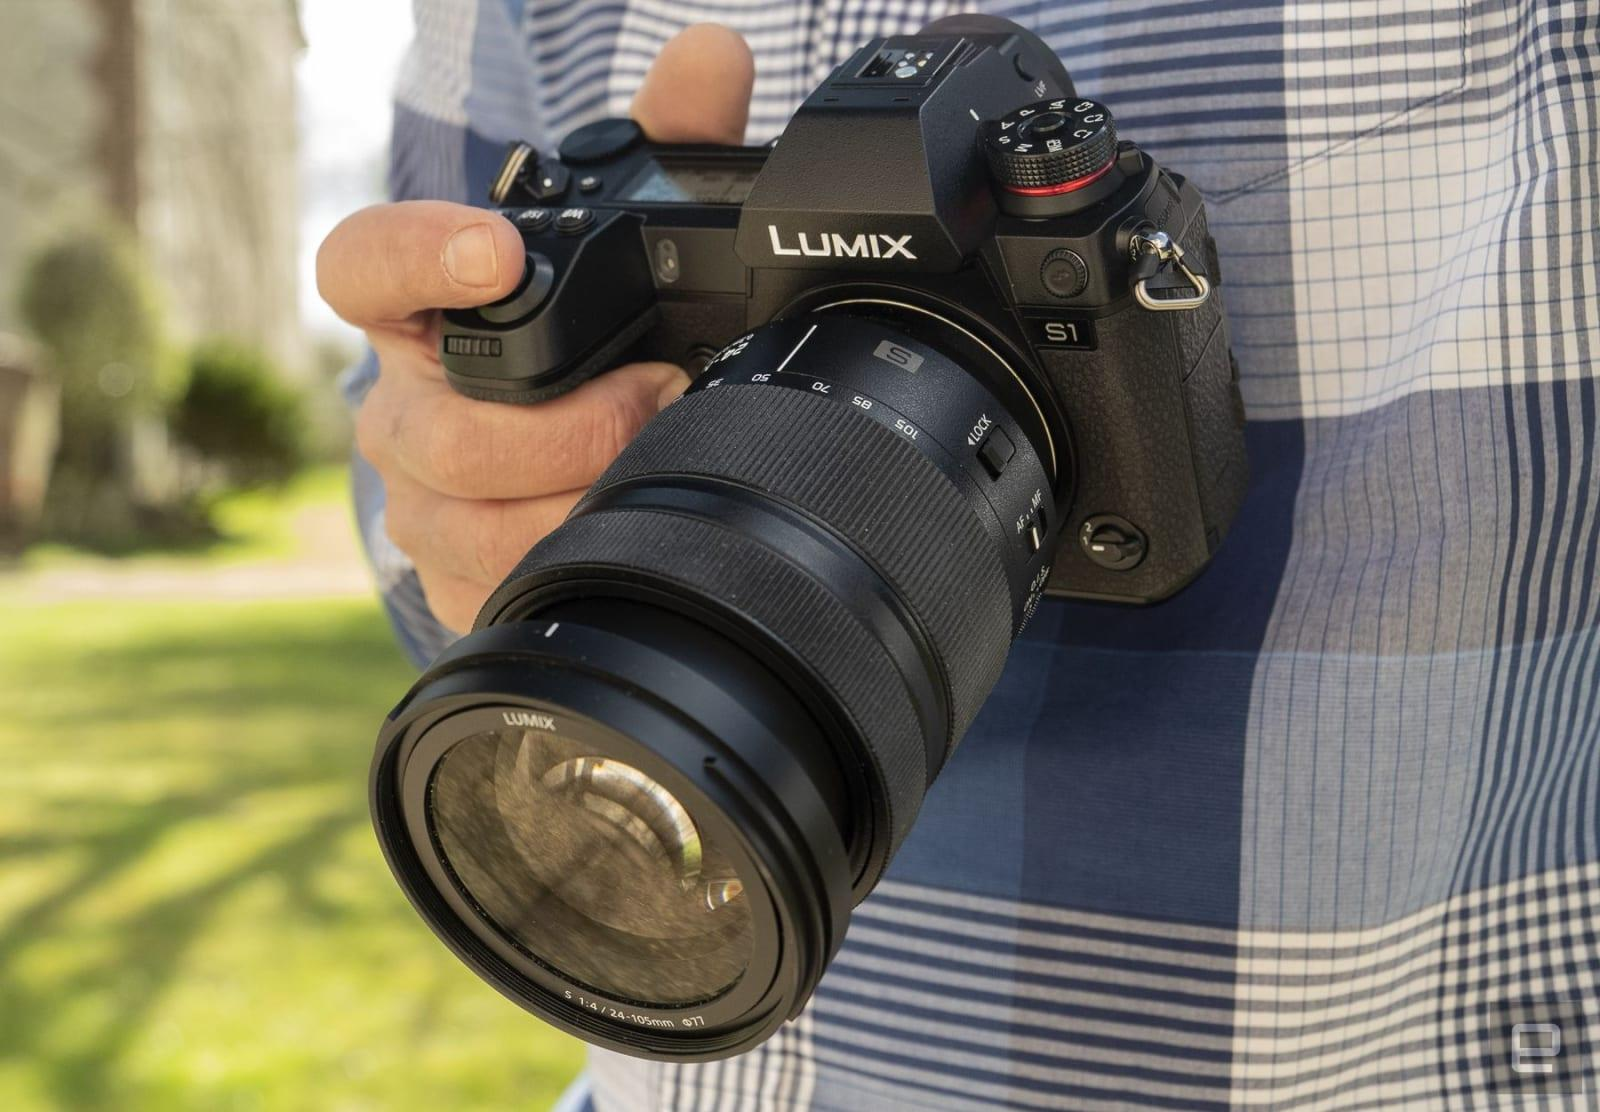 Panasonic S1 review: A perfect camera, except for its autofocus system